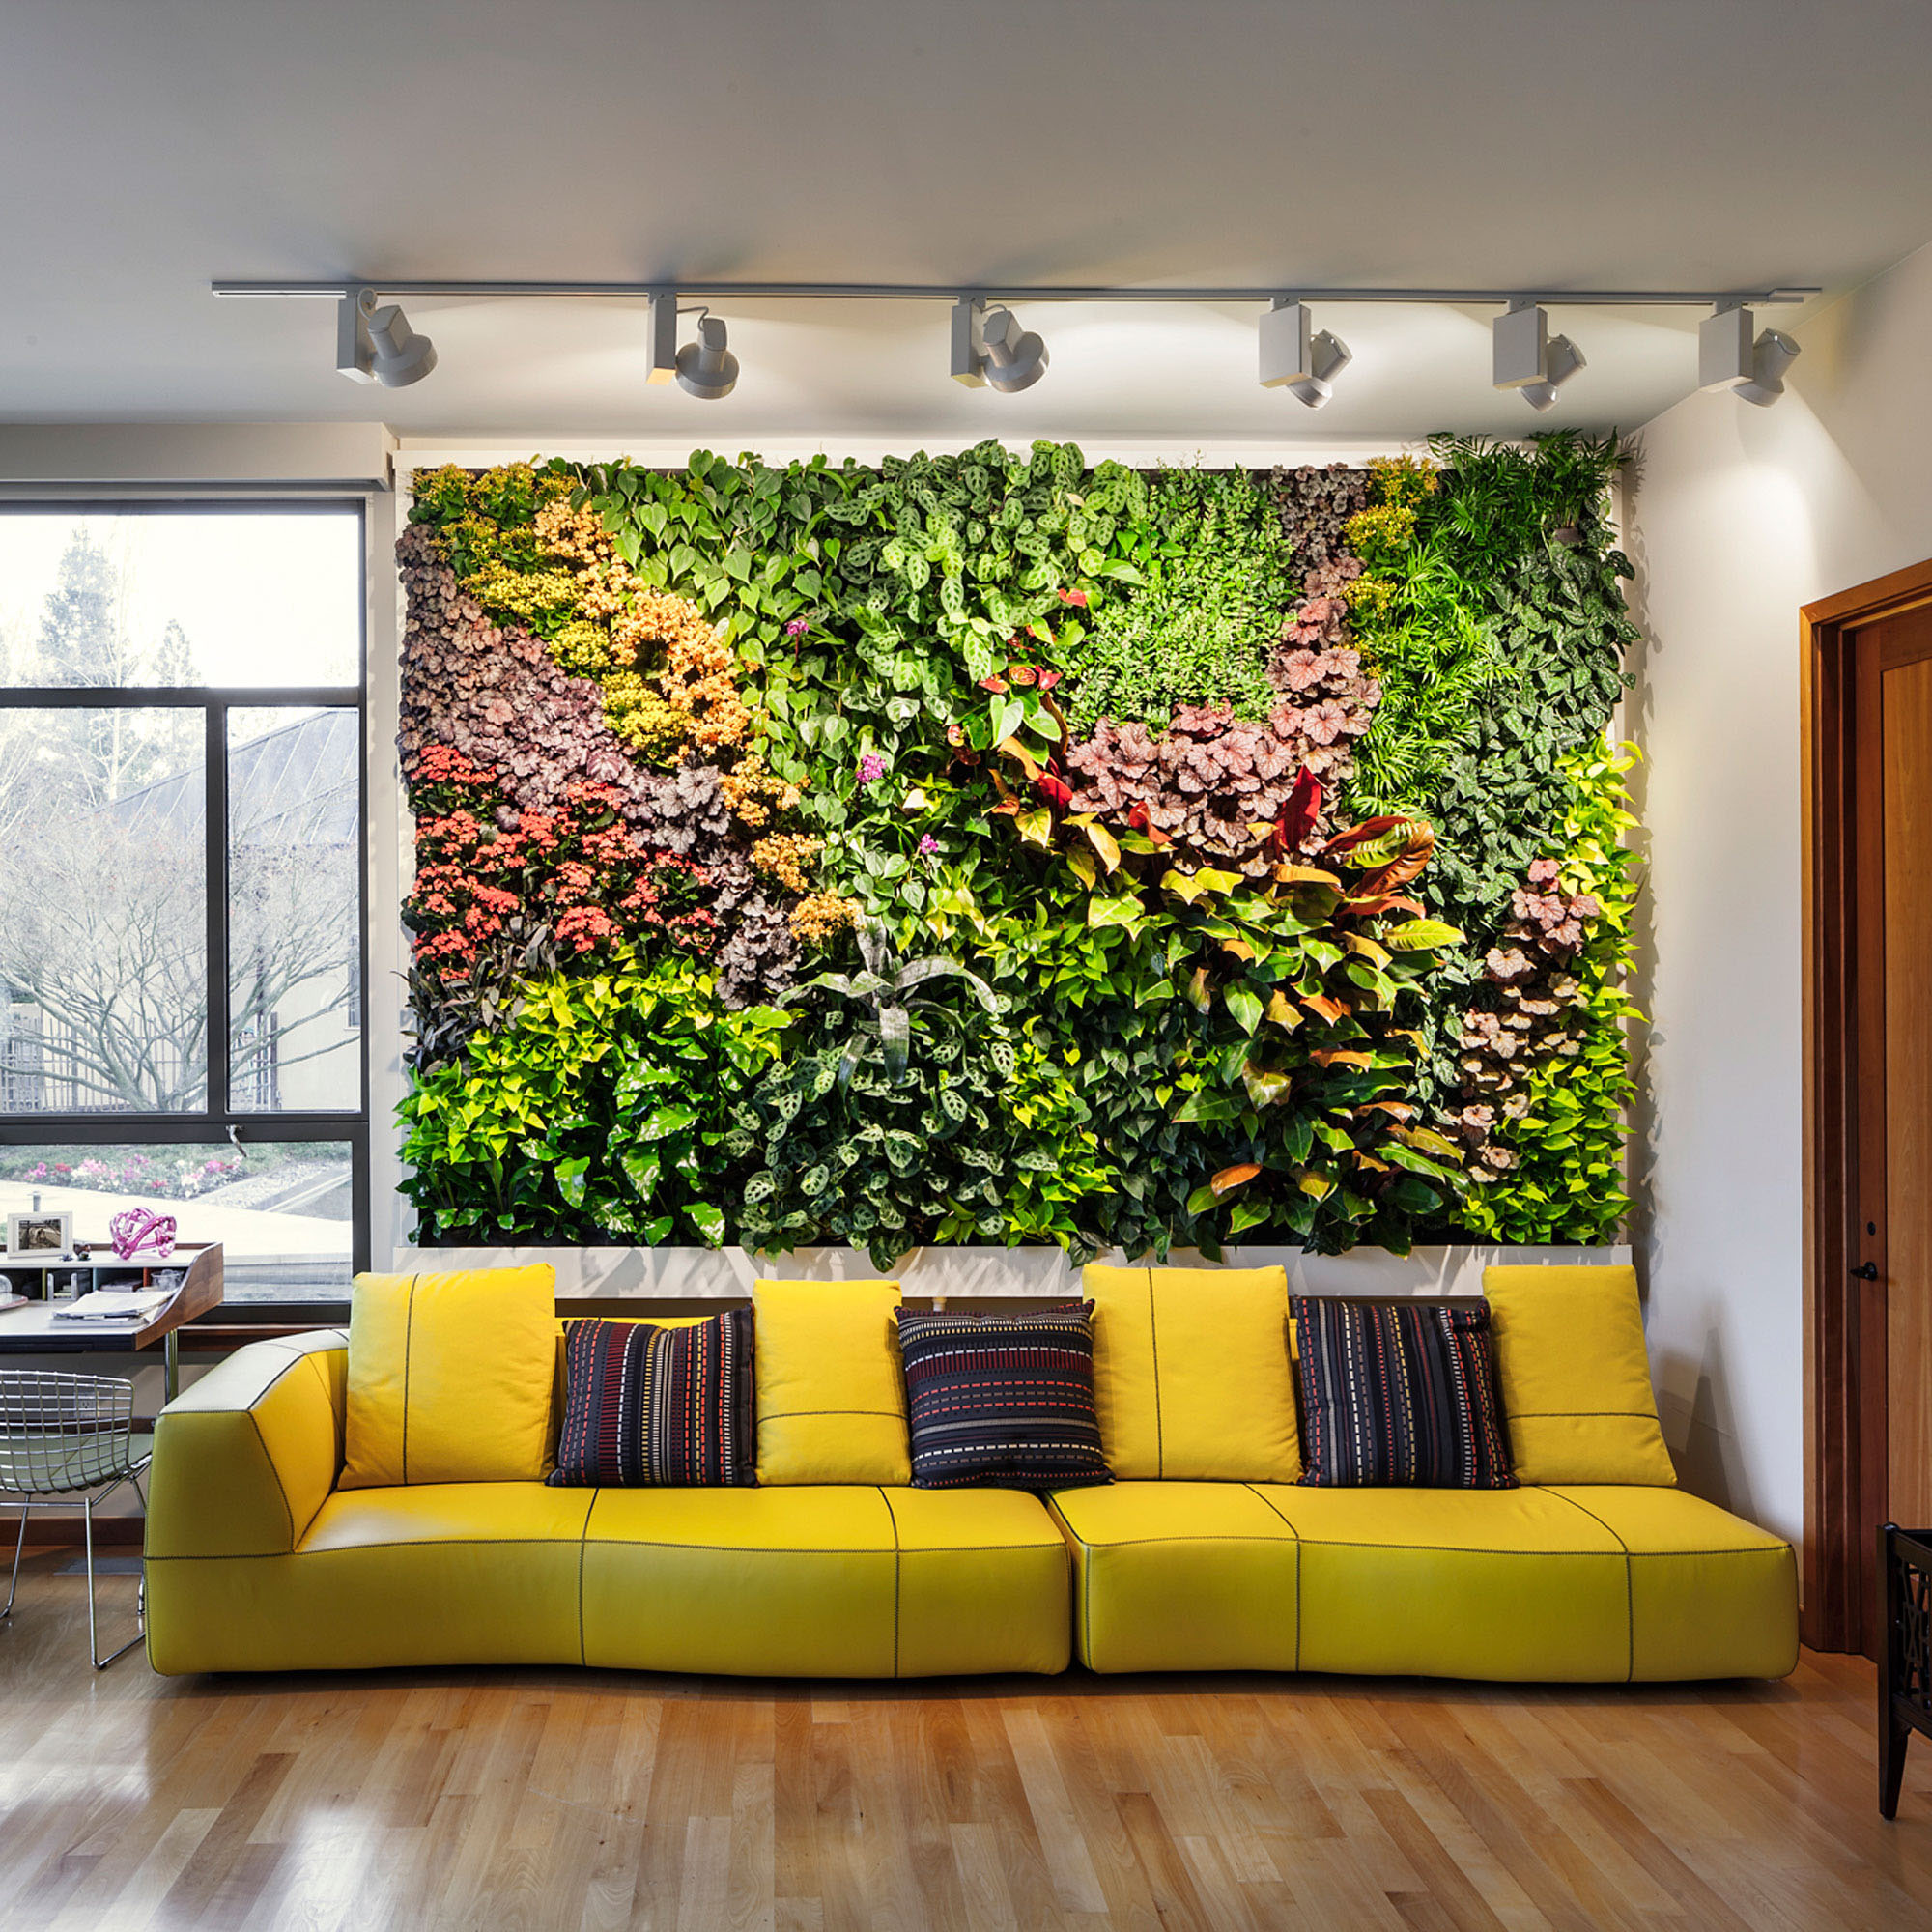 Colorful living green wall art above a bright yellow sofa with lots of lighting.